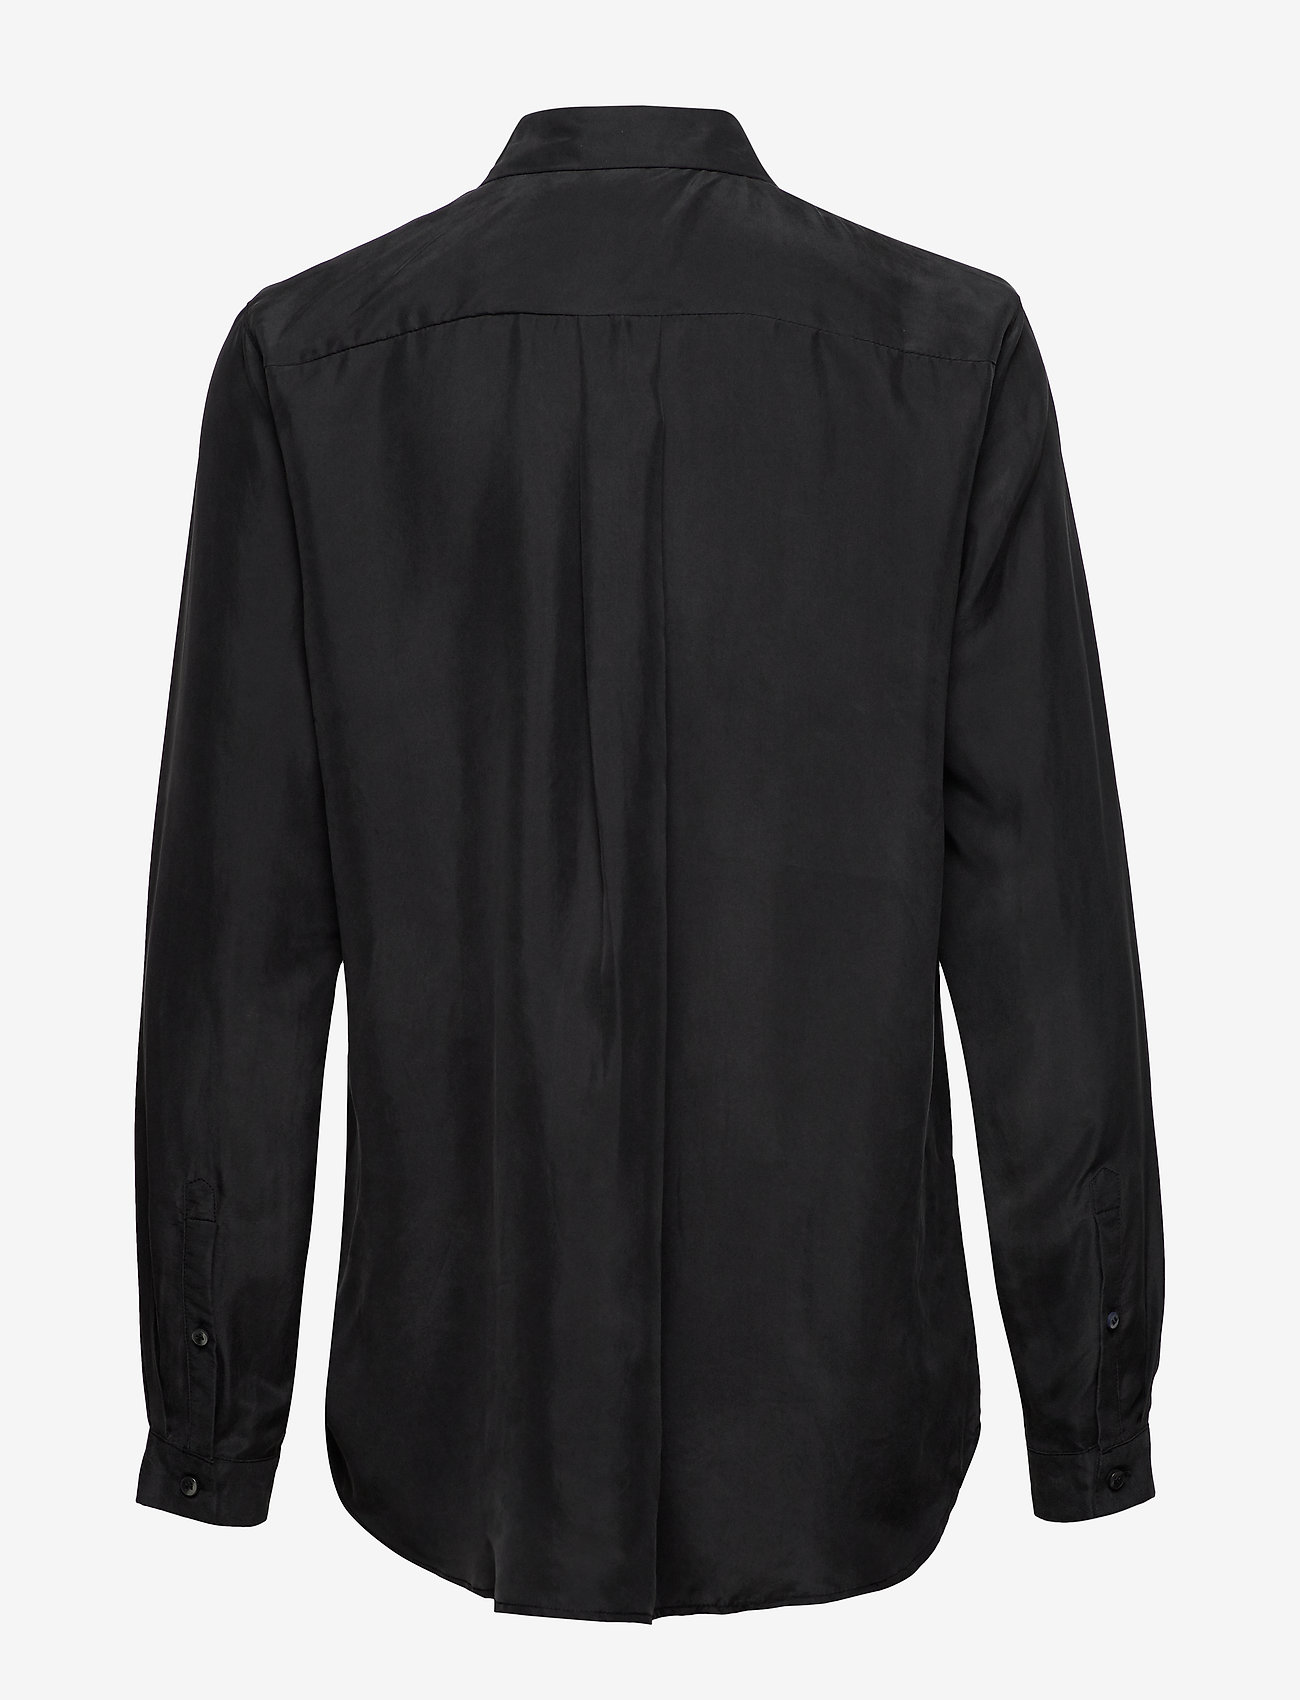 Whyred - KAROLINA WASHED SILK - blouses à manches longues - black - 1